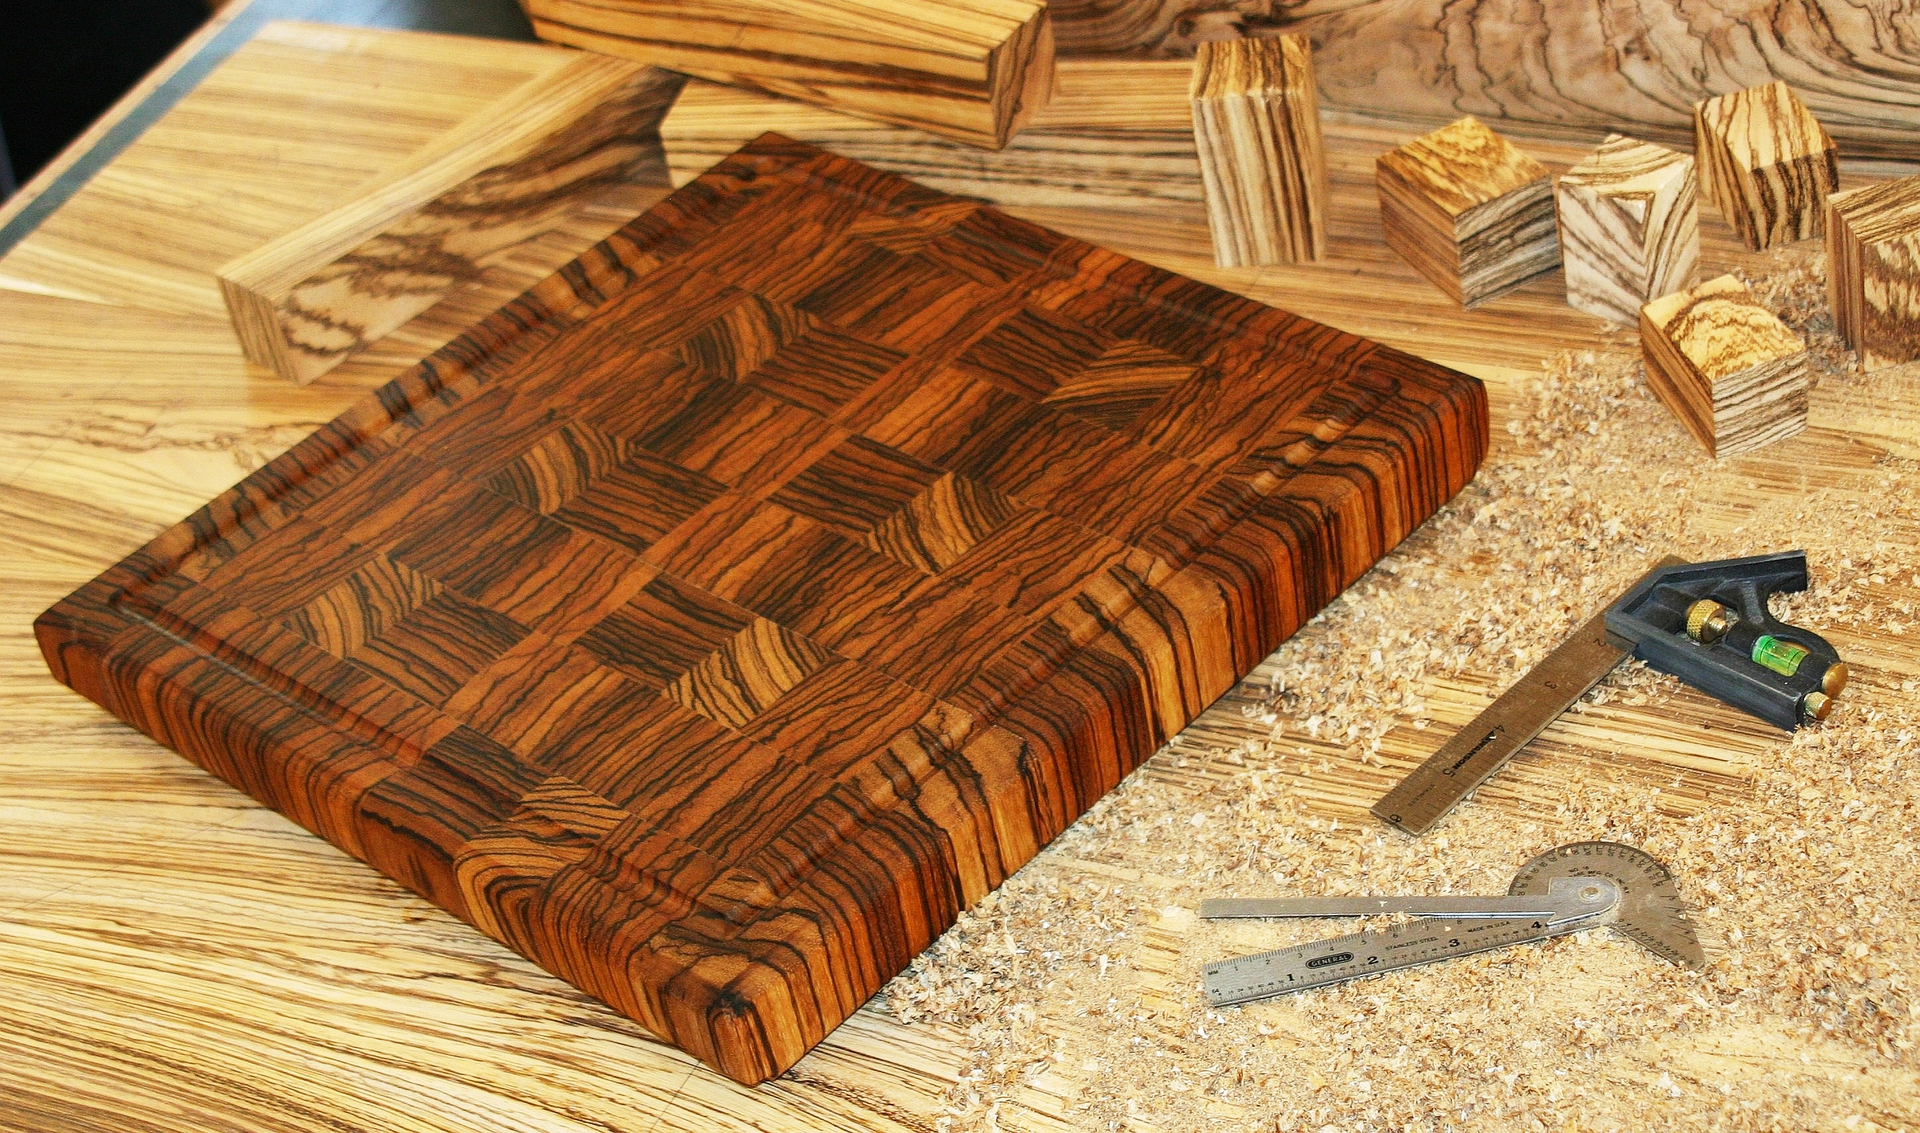 inspiring-ideas-wood-cutting-board-for-meat-wood-cutting-board-maintenance-wood-cutting-board-material-wood-cutting-board-mineral-oil-wood-cutting-board-made-in-usa-wood-cutting-board-manufacture